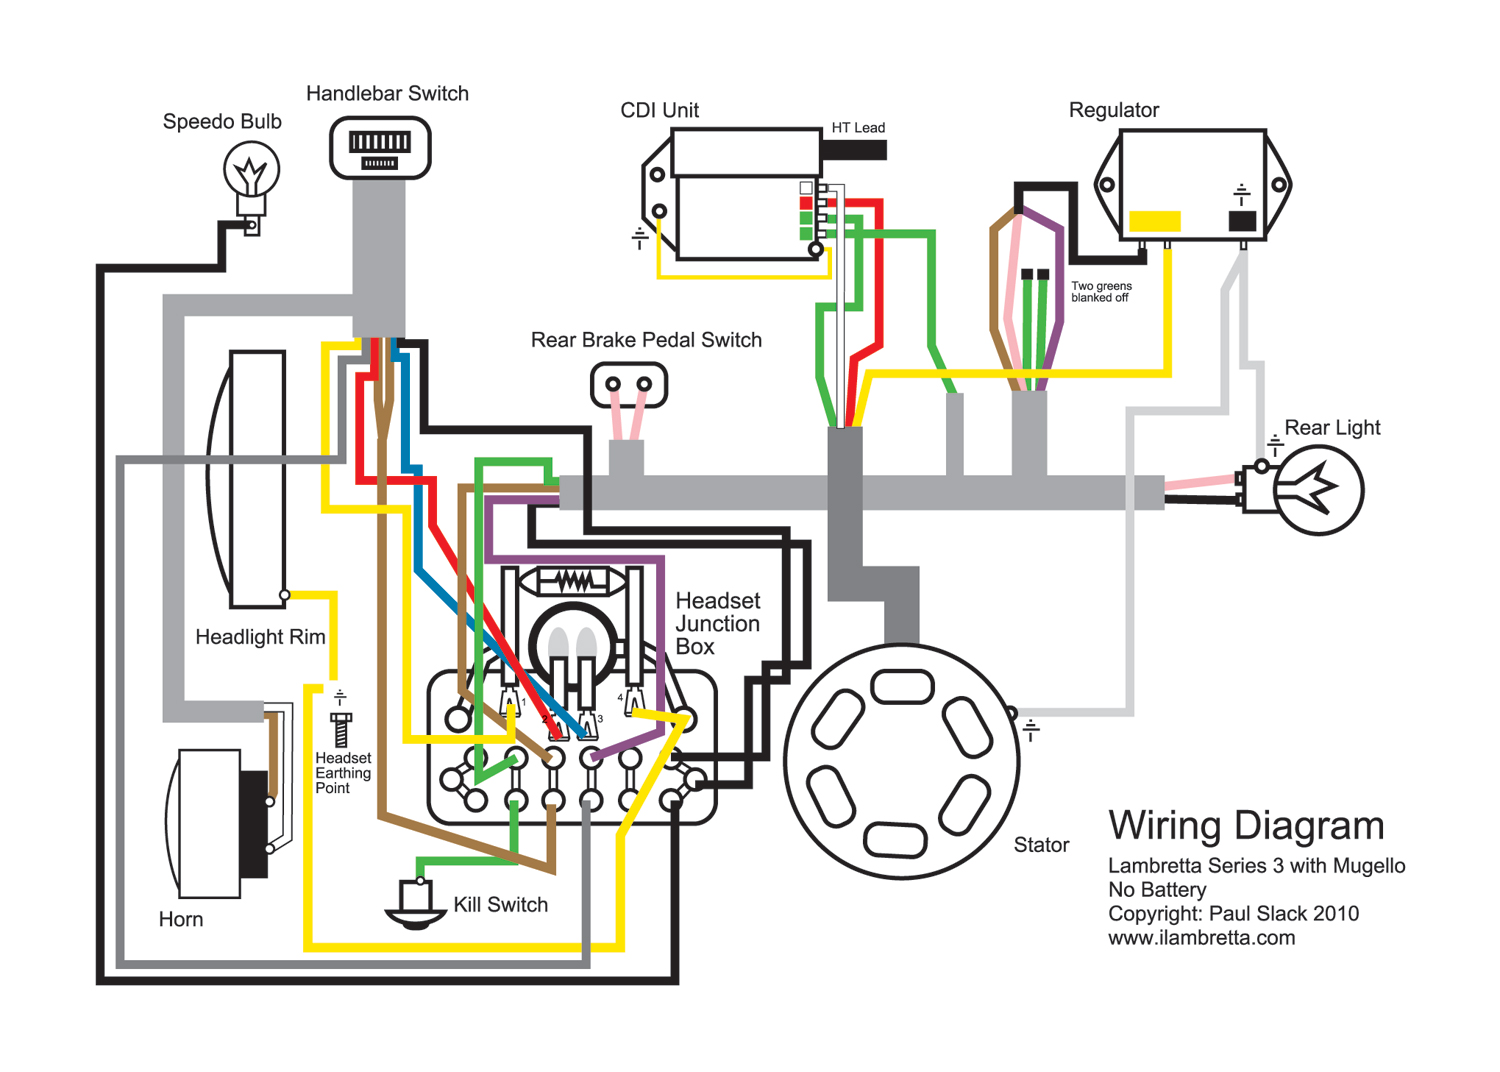 medium resolution of 12v wire diagram wiring diagram schematics 12v wiring basics dc 12v wiring guide